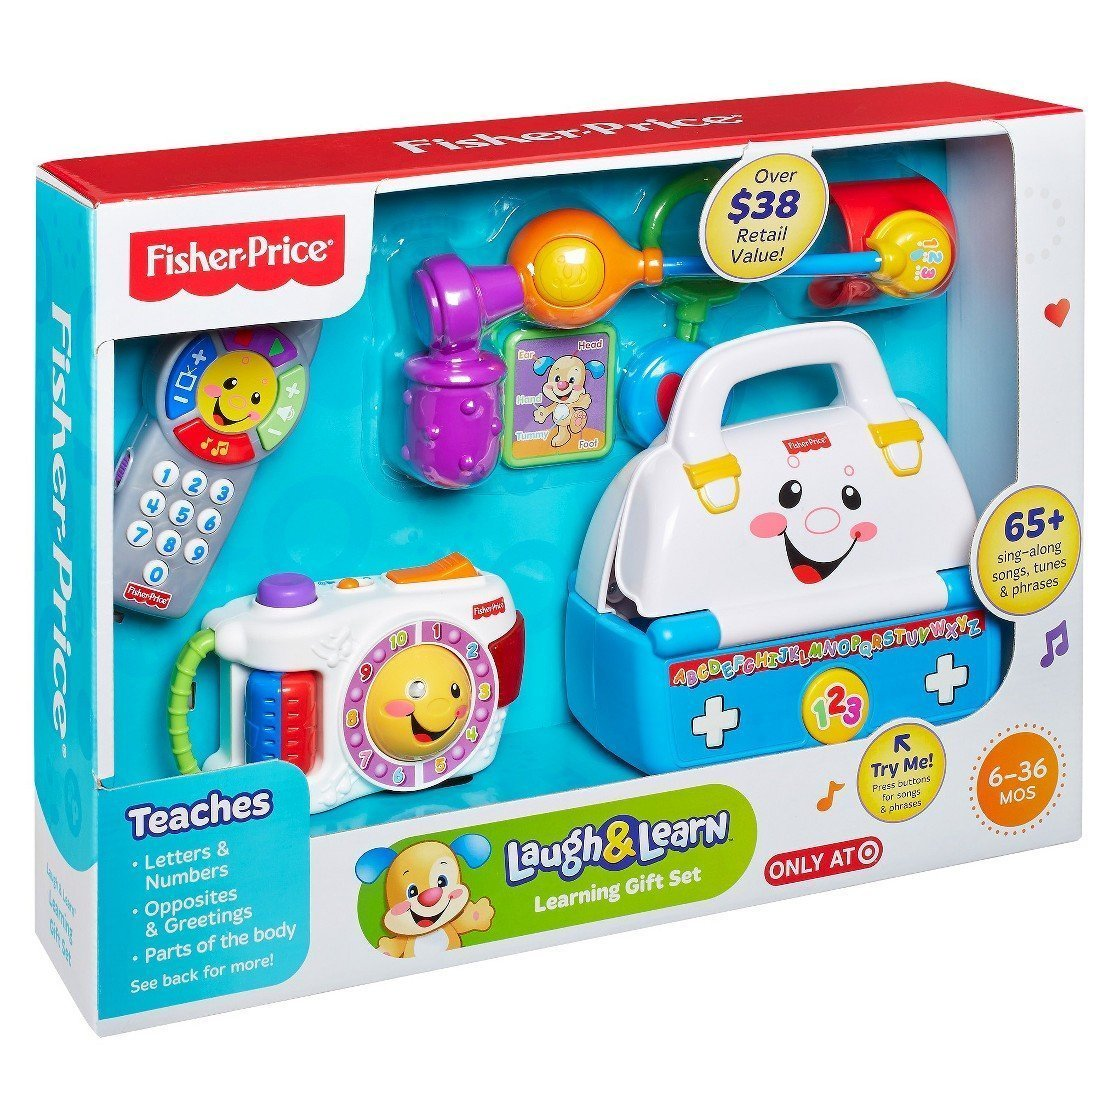 Laugh and learning gift set